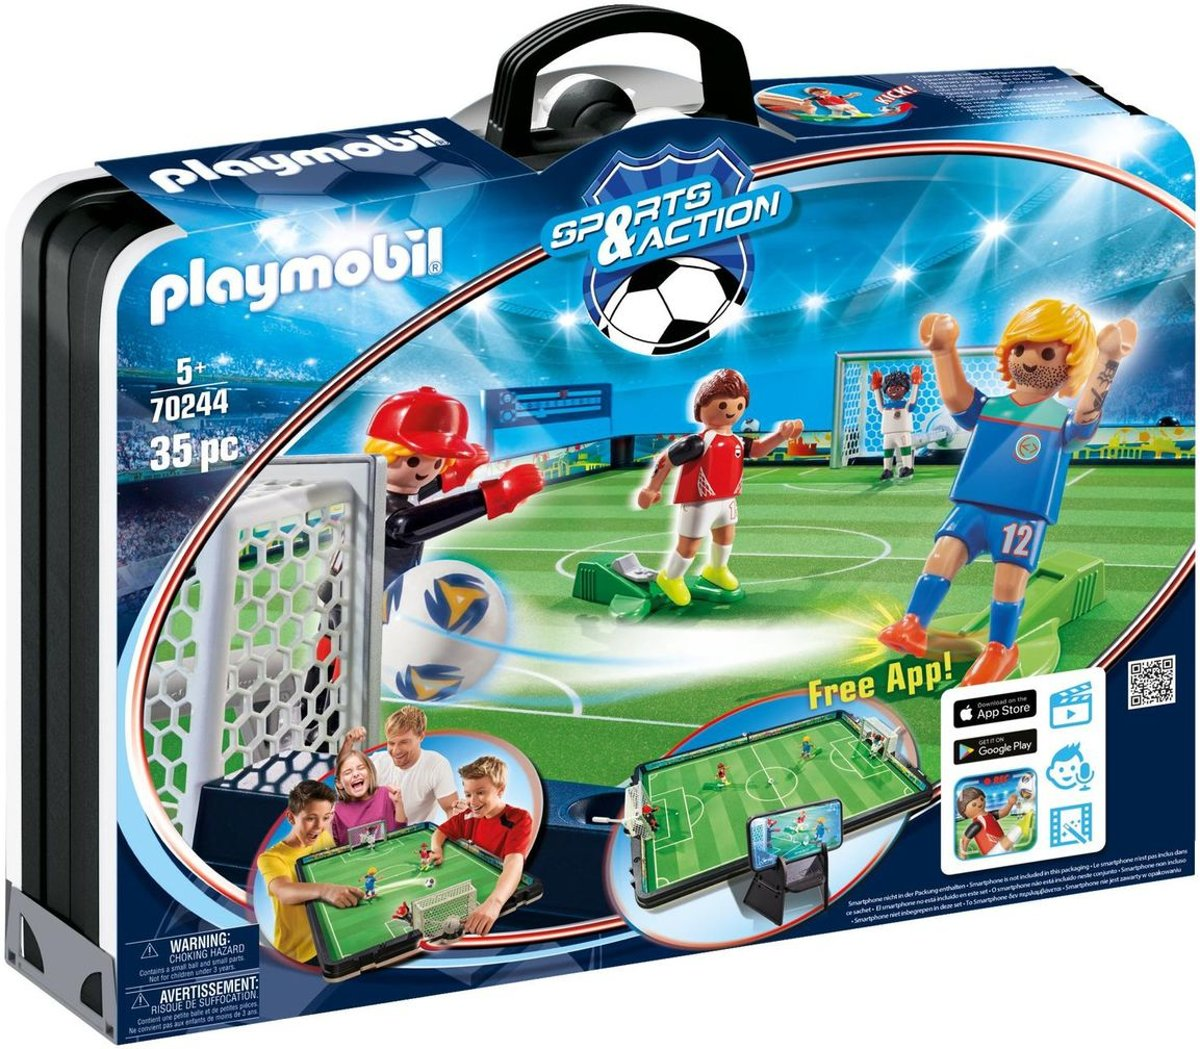 PLAYMOBIL Sports & Action &  Meeneem voetbalstadion - 70244